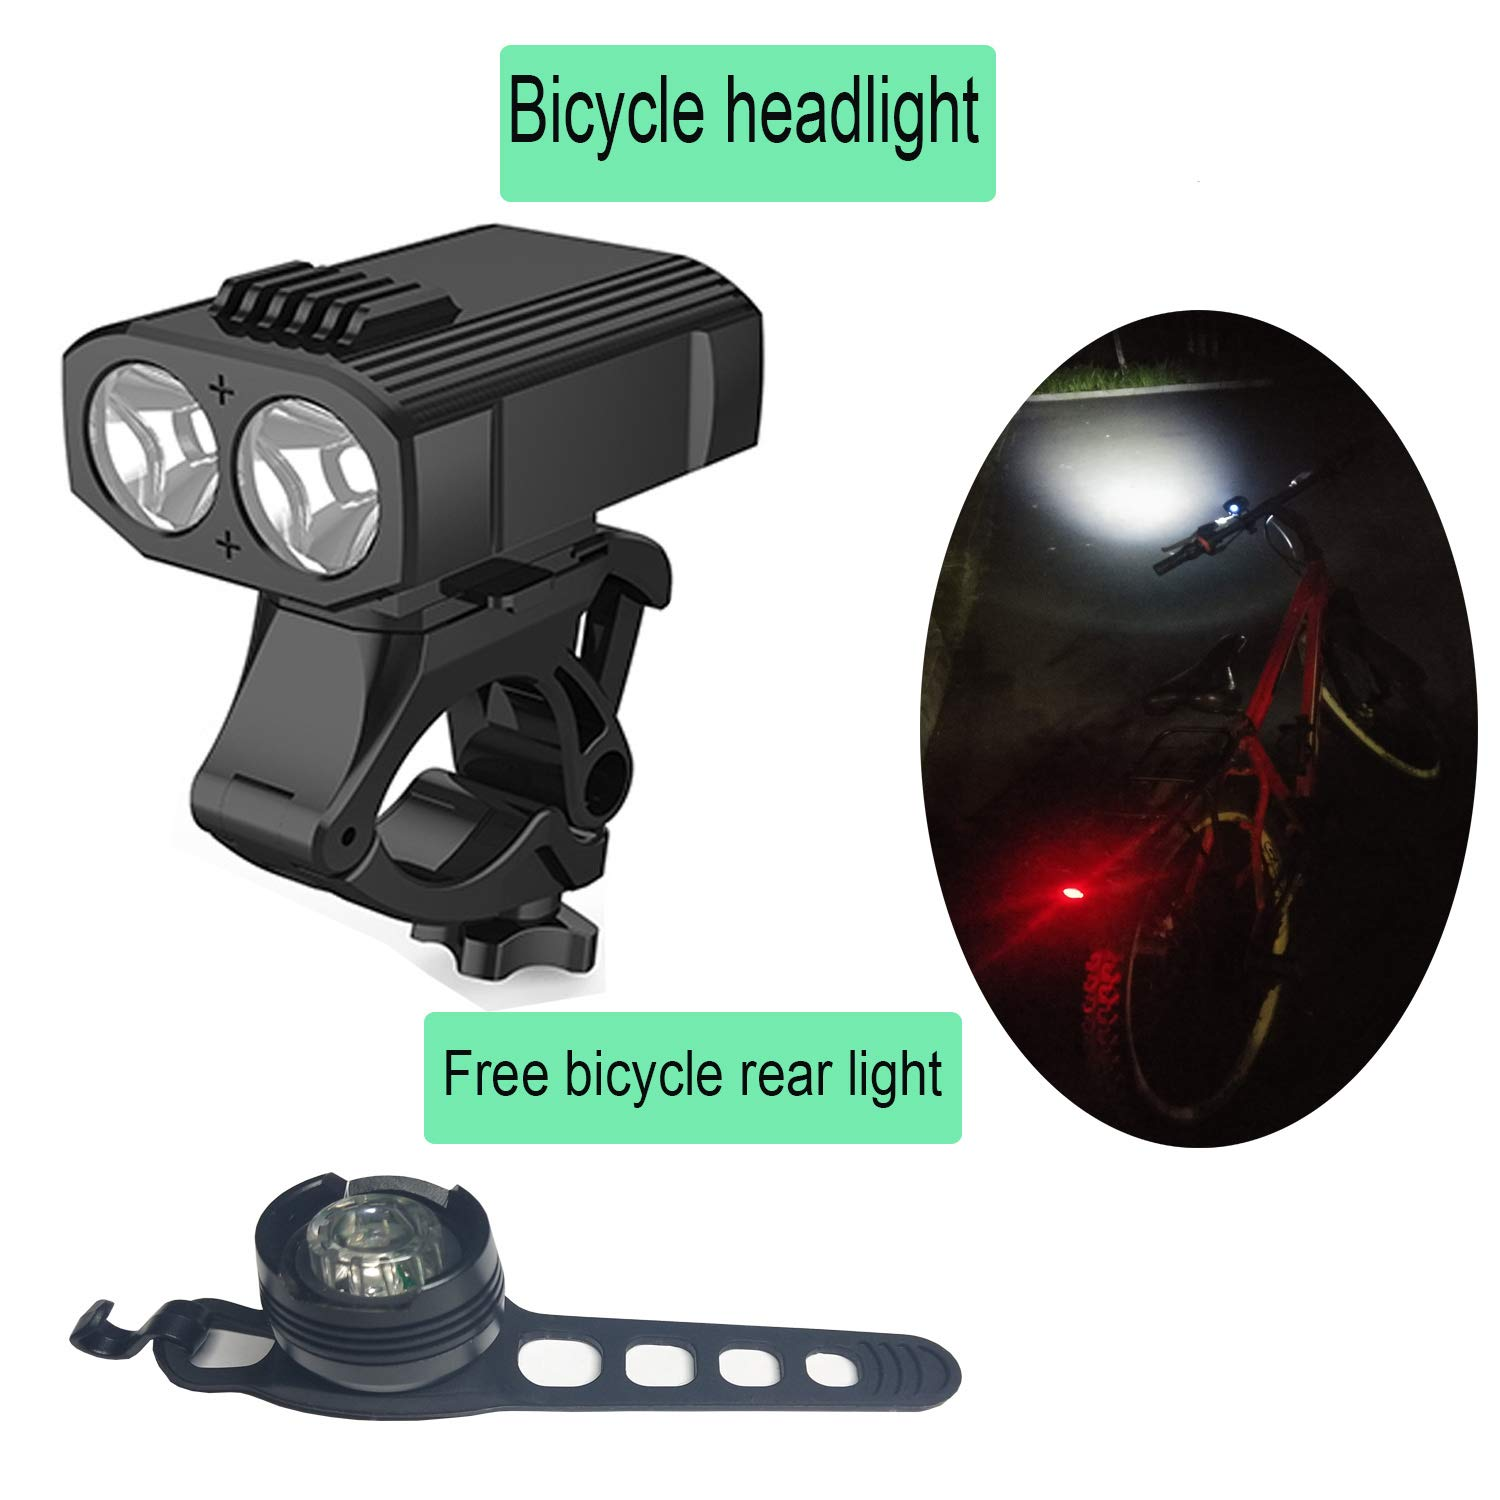 Super bright 800 lumens bicycle light rechargeable bicycle light set IP65 waterproof quick release headlights and taillights bicycle flashlight eas USB rechargeable waterproof bicycle LED headlights